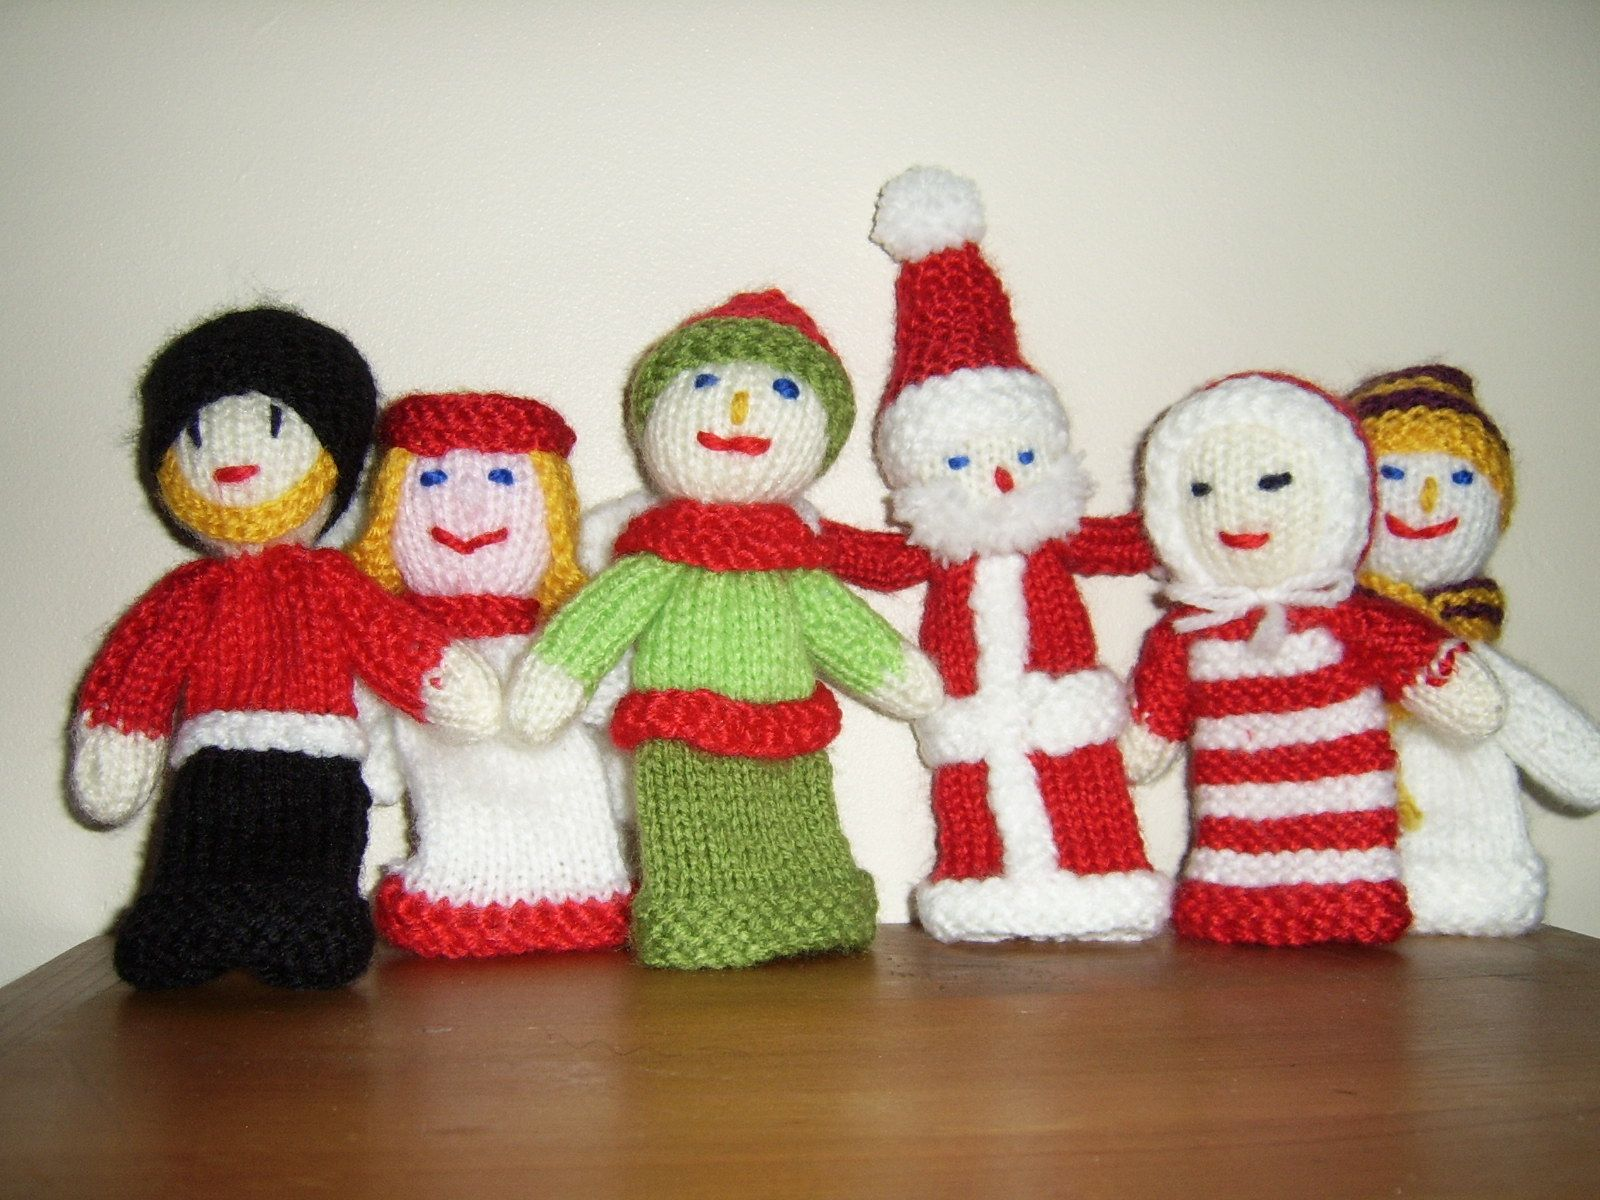 Free knitting patterns knitted toys hats scarf christmas knitted free knitting patterns knitted toys hats scarf christmas knitted toys christmas knitted decorations finger puppets fabric bankloansurffo Images